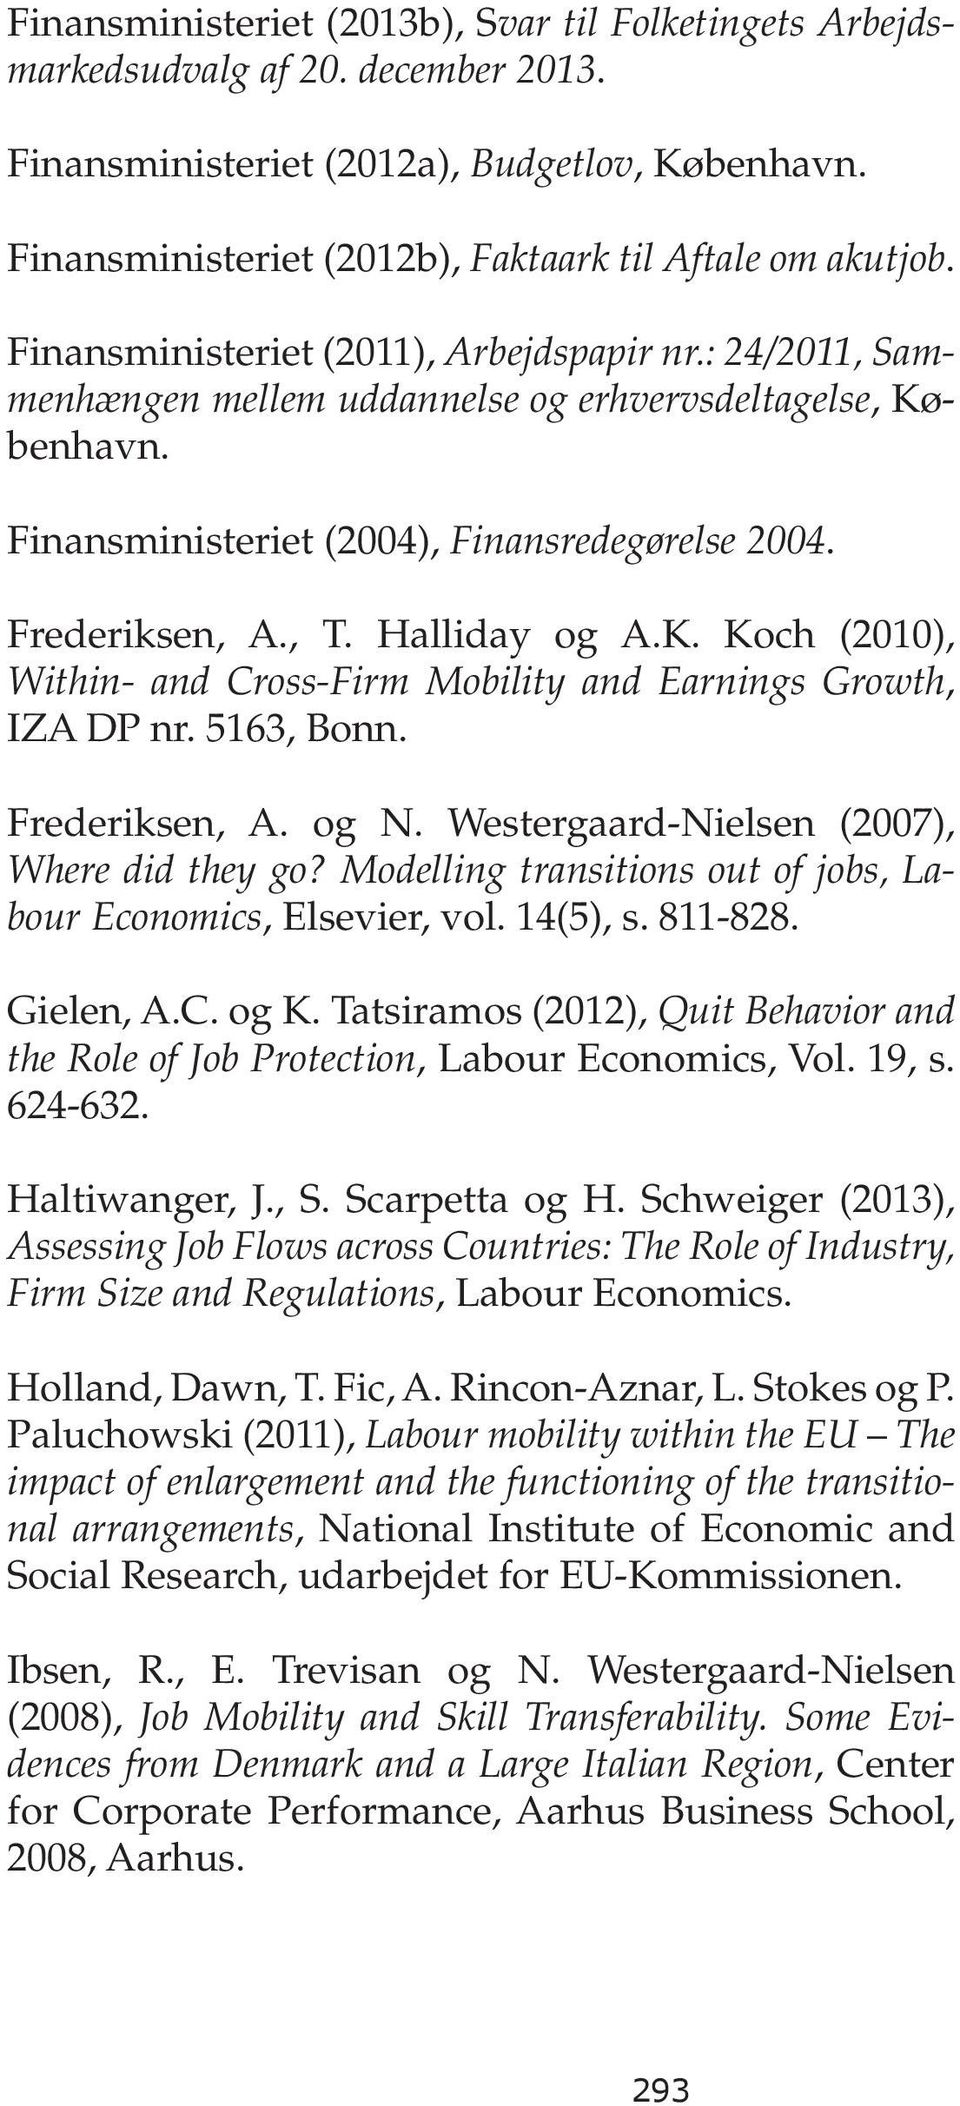 Halliday og A.K. Koch (2010), Within- and Cross-Firm Mobility and Earnings Growth, IZA DP nr. 5163, Bonn. Frederiksen, A. og N. Westergaard-Nielsen (2007), Where did they go?